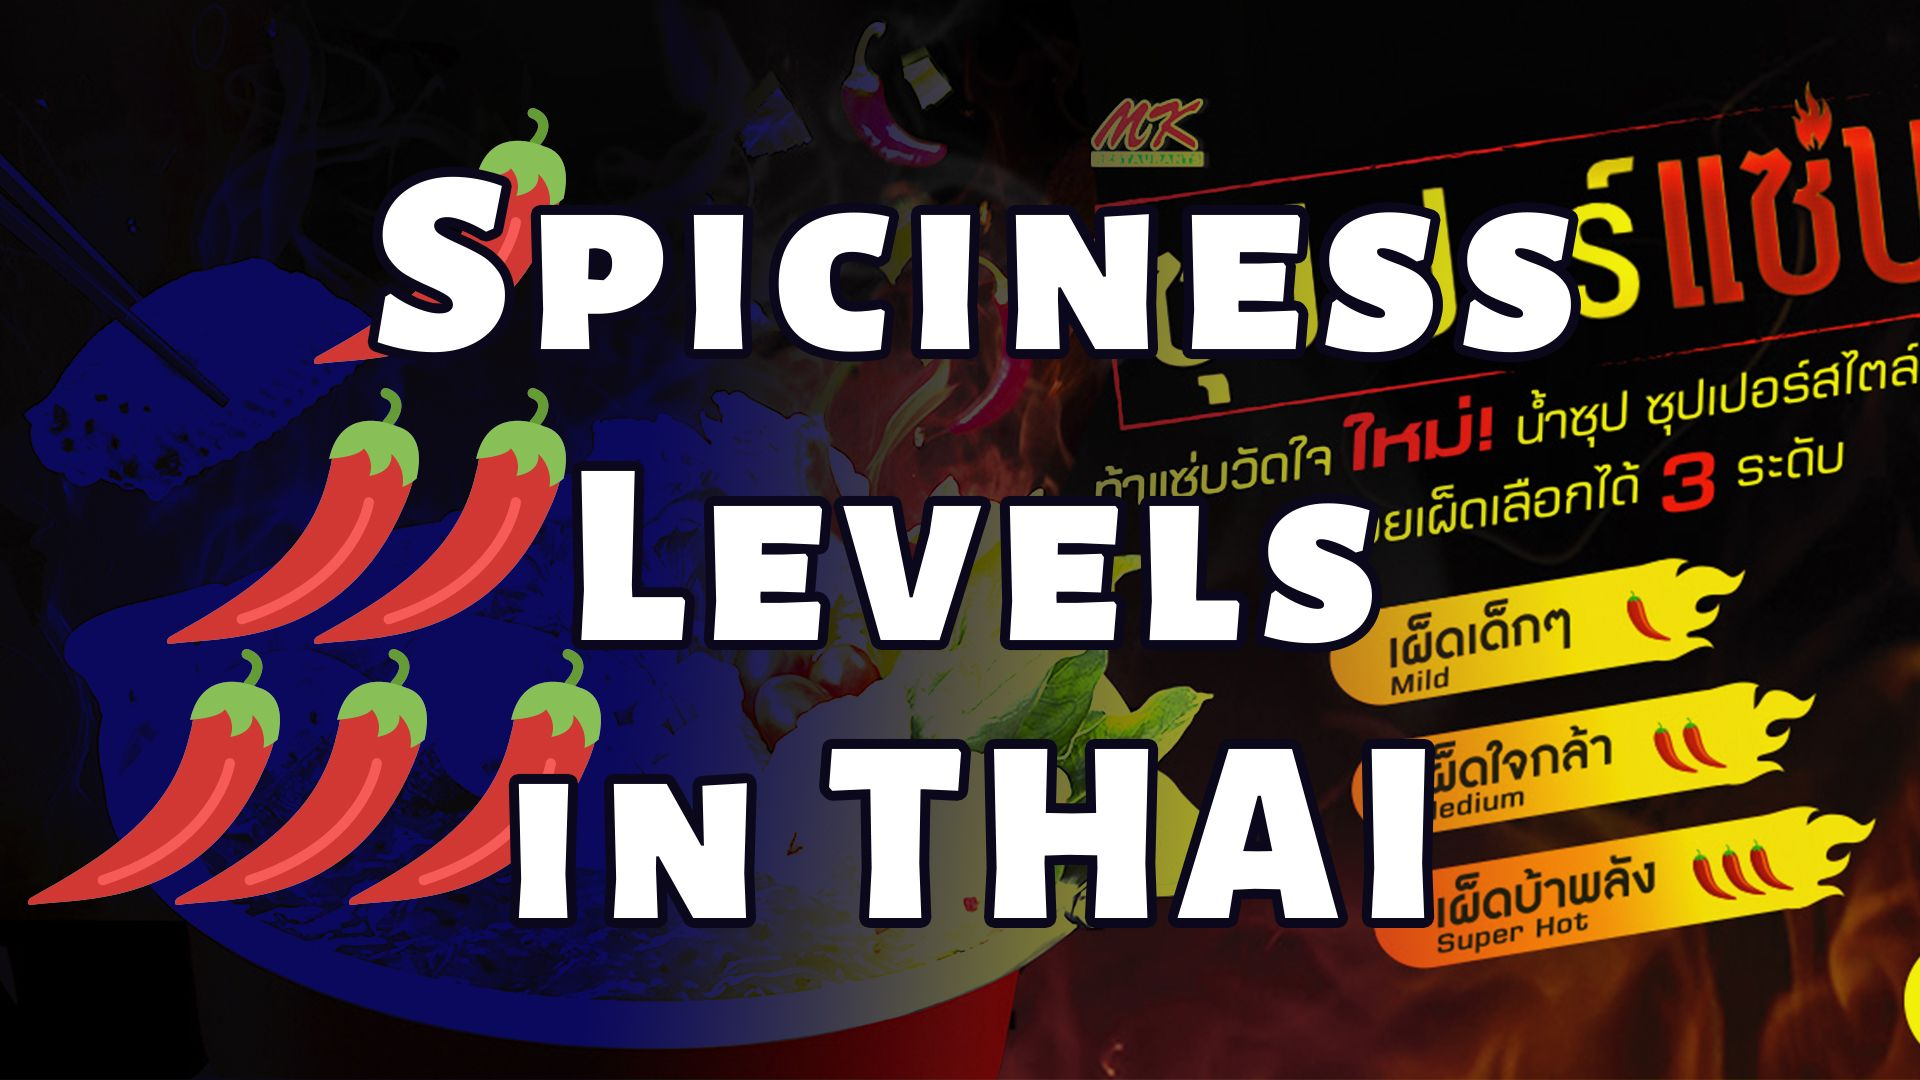 Thai Spiciness Levels